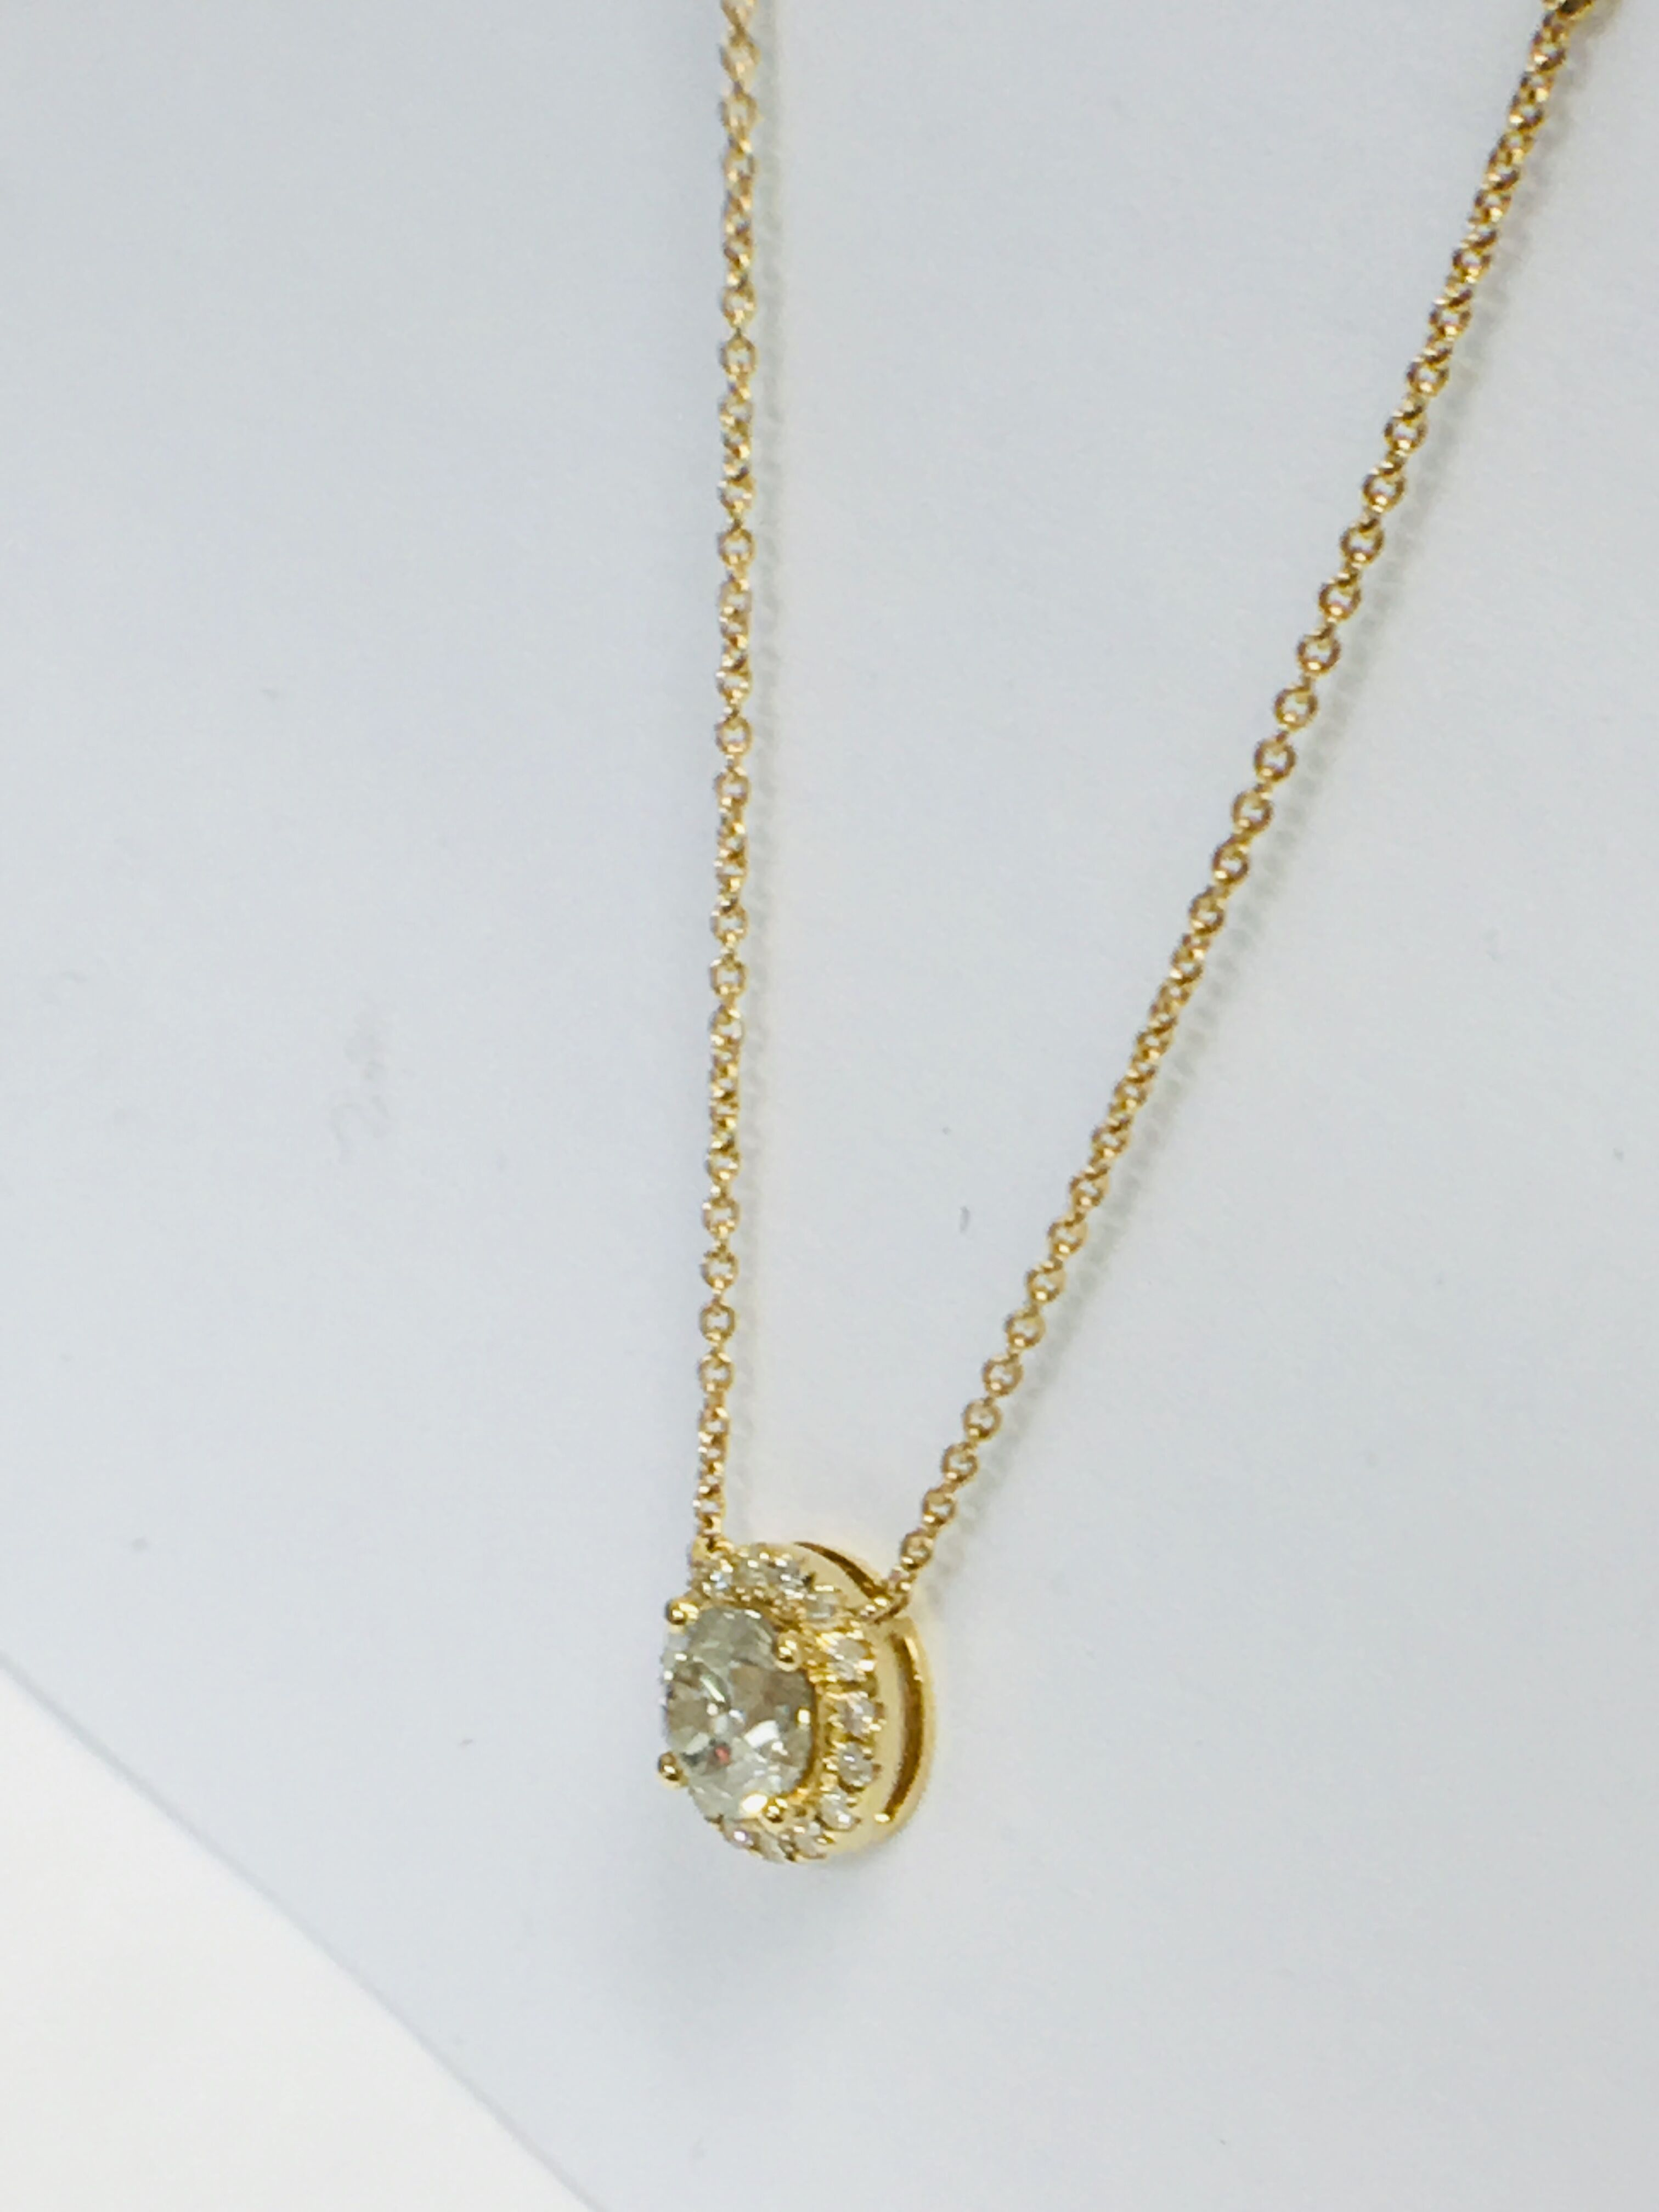 18ct yellow gold diamond necklace. tdw. - Image 7 of 10